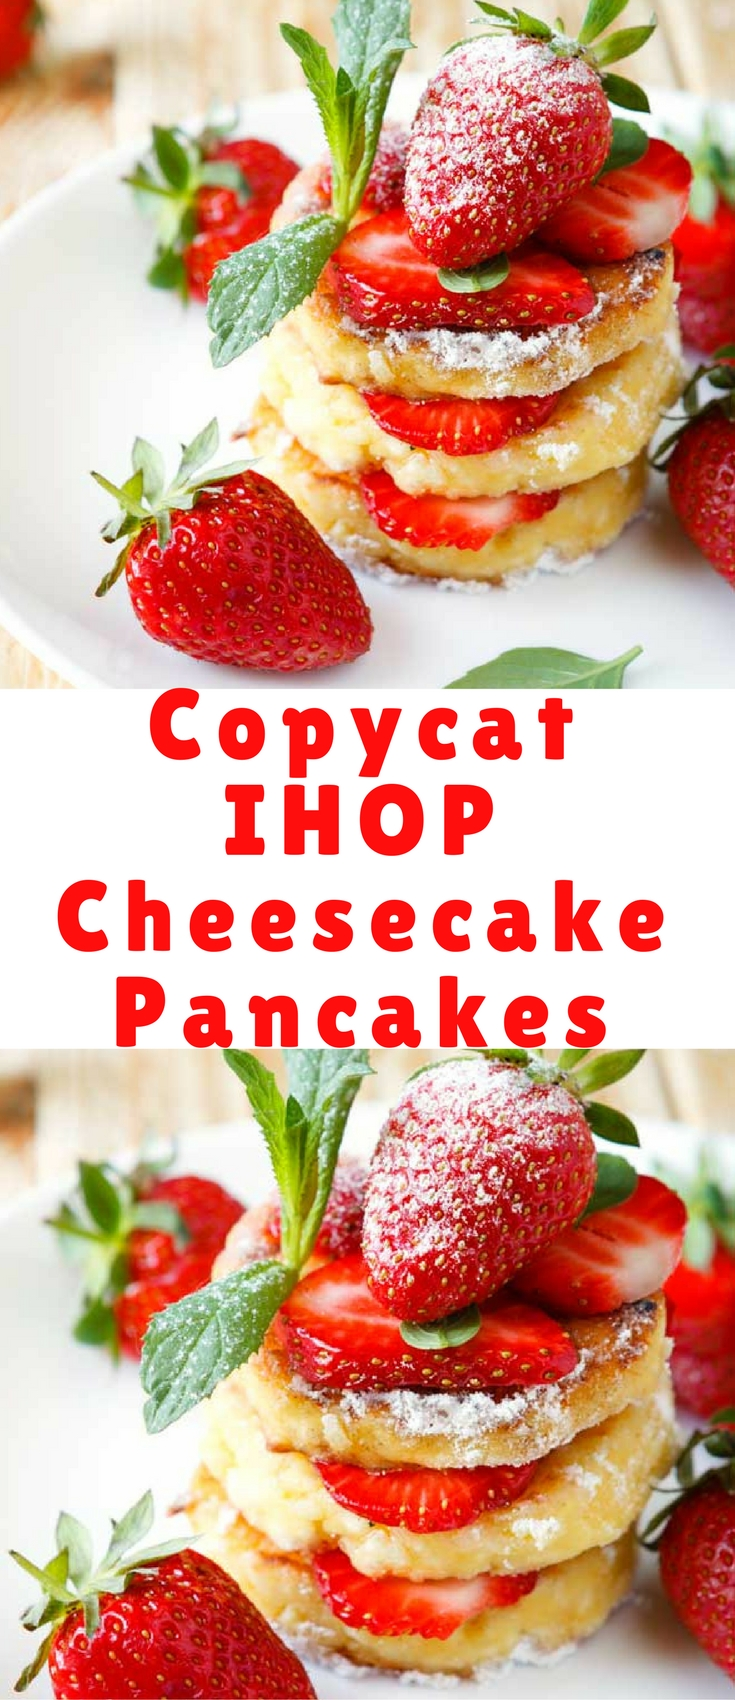 Your family will adore you when you serve up these fantastic strawberry cheesecake pancakes. And don't forget that you'll be saving money making them at home from scratch instead of spending 9 dollars a plate at IHOP.